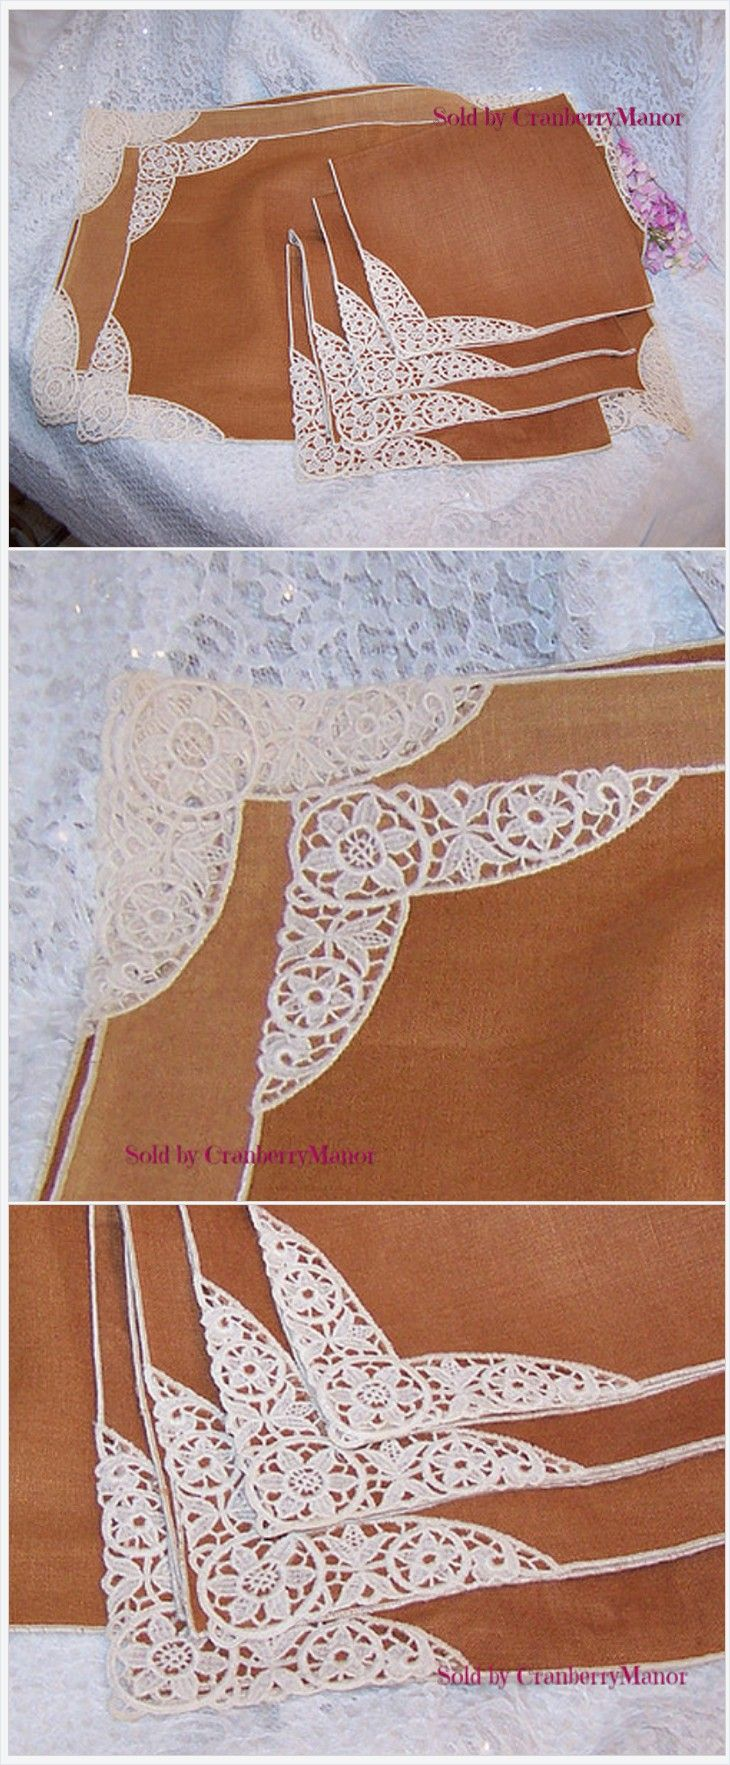 Tan & White #Lace Edged #Placemat and #Napkin Set #Vintage #MidCentury #Linen #Gift #GotVintage http://cranberry-manor.com/tan-white-lace-edged-placemat-and-napkin-set-vintage-mid-century-linen-gift/